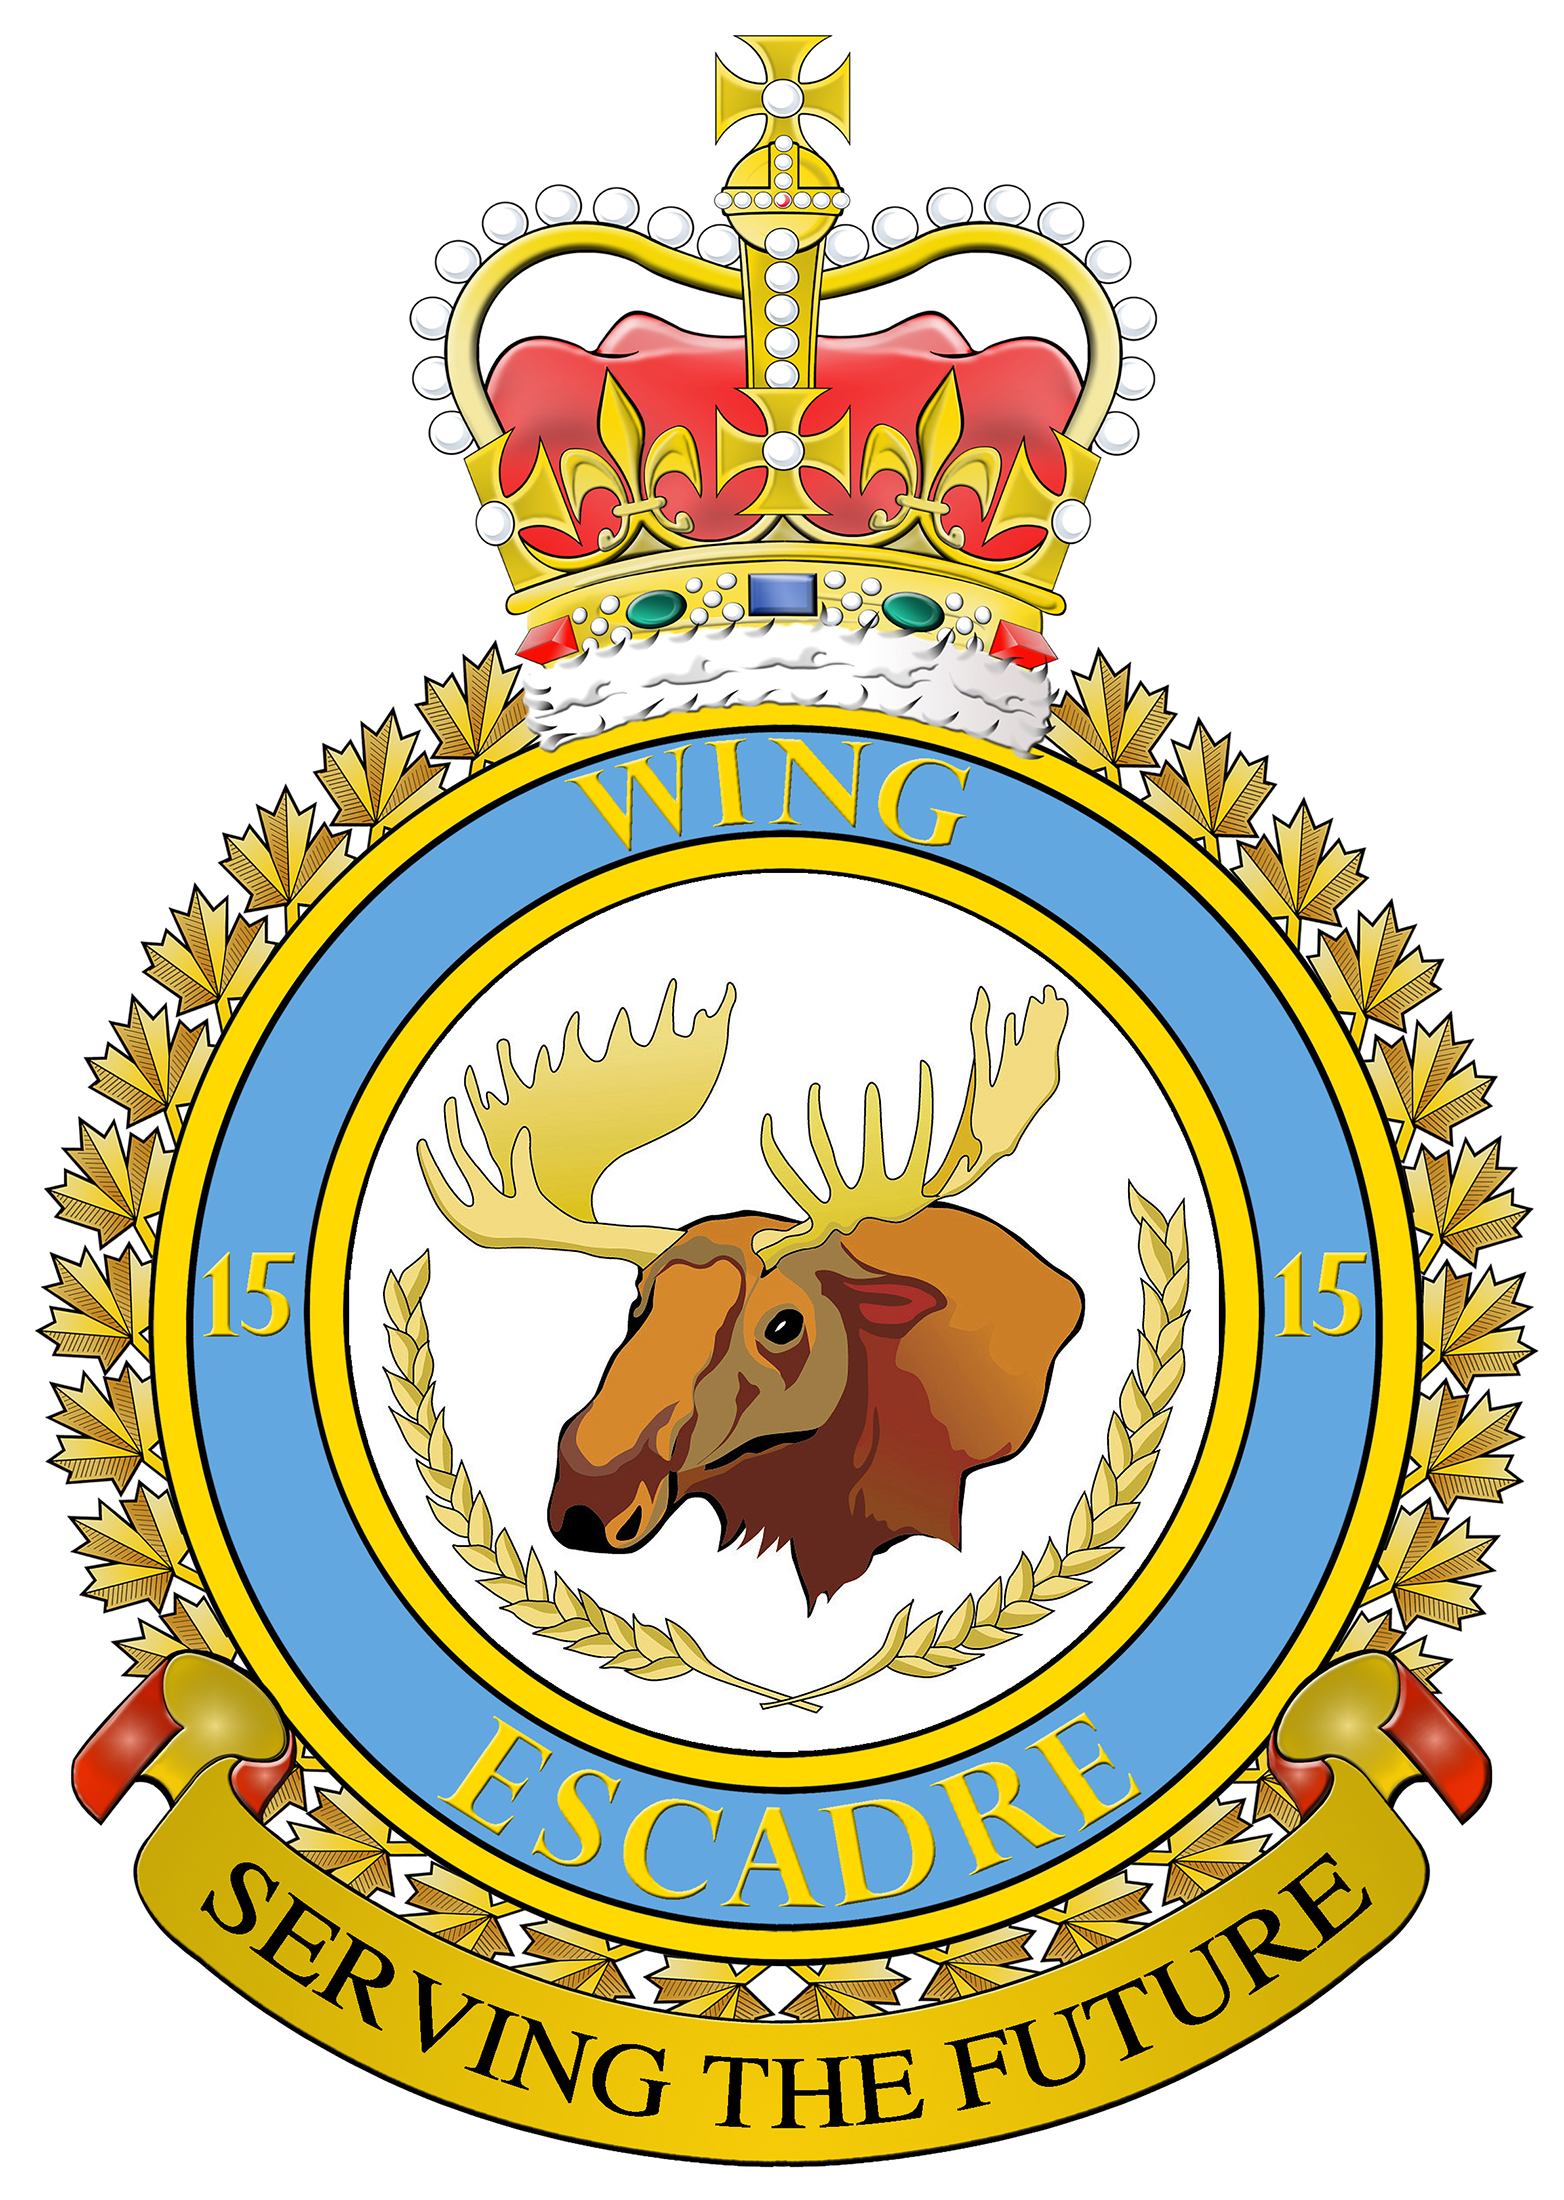 15 Wing Badge